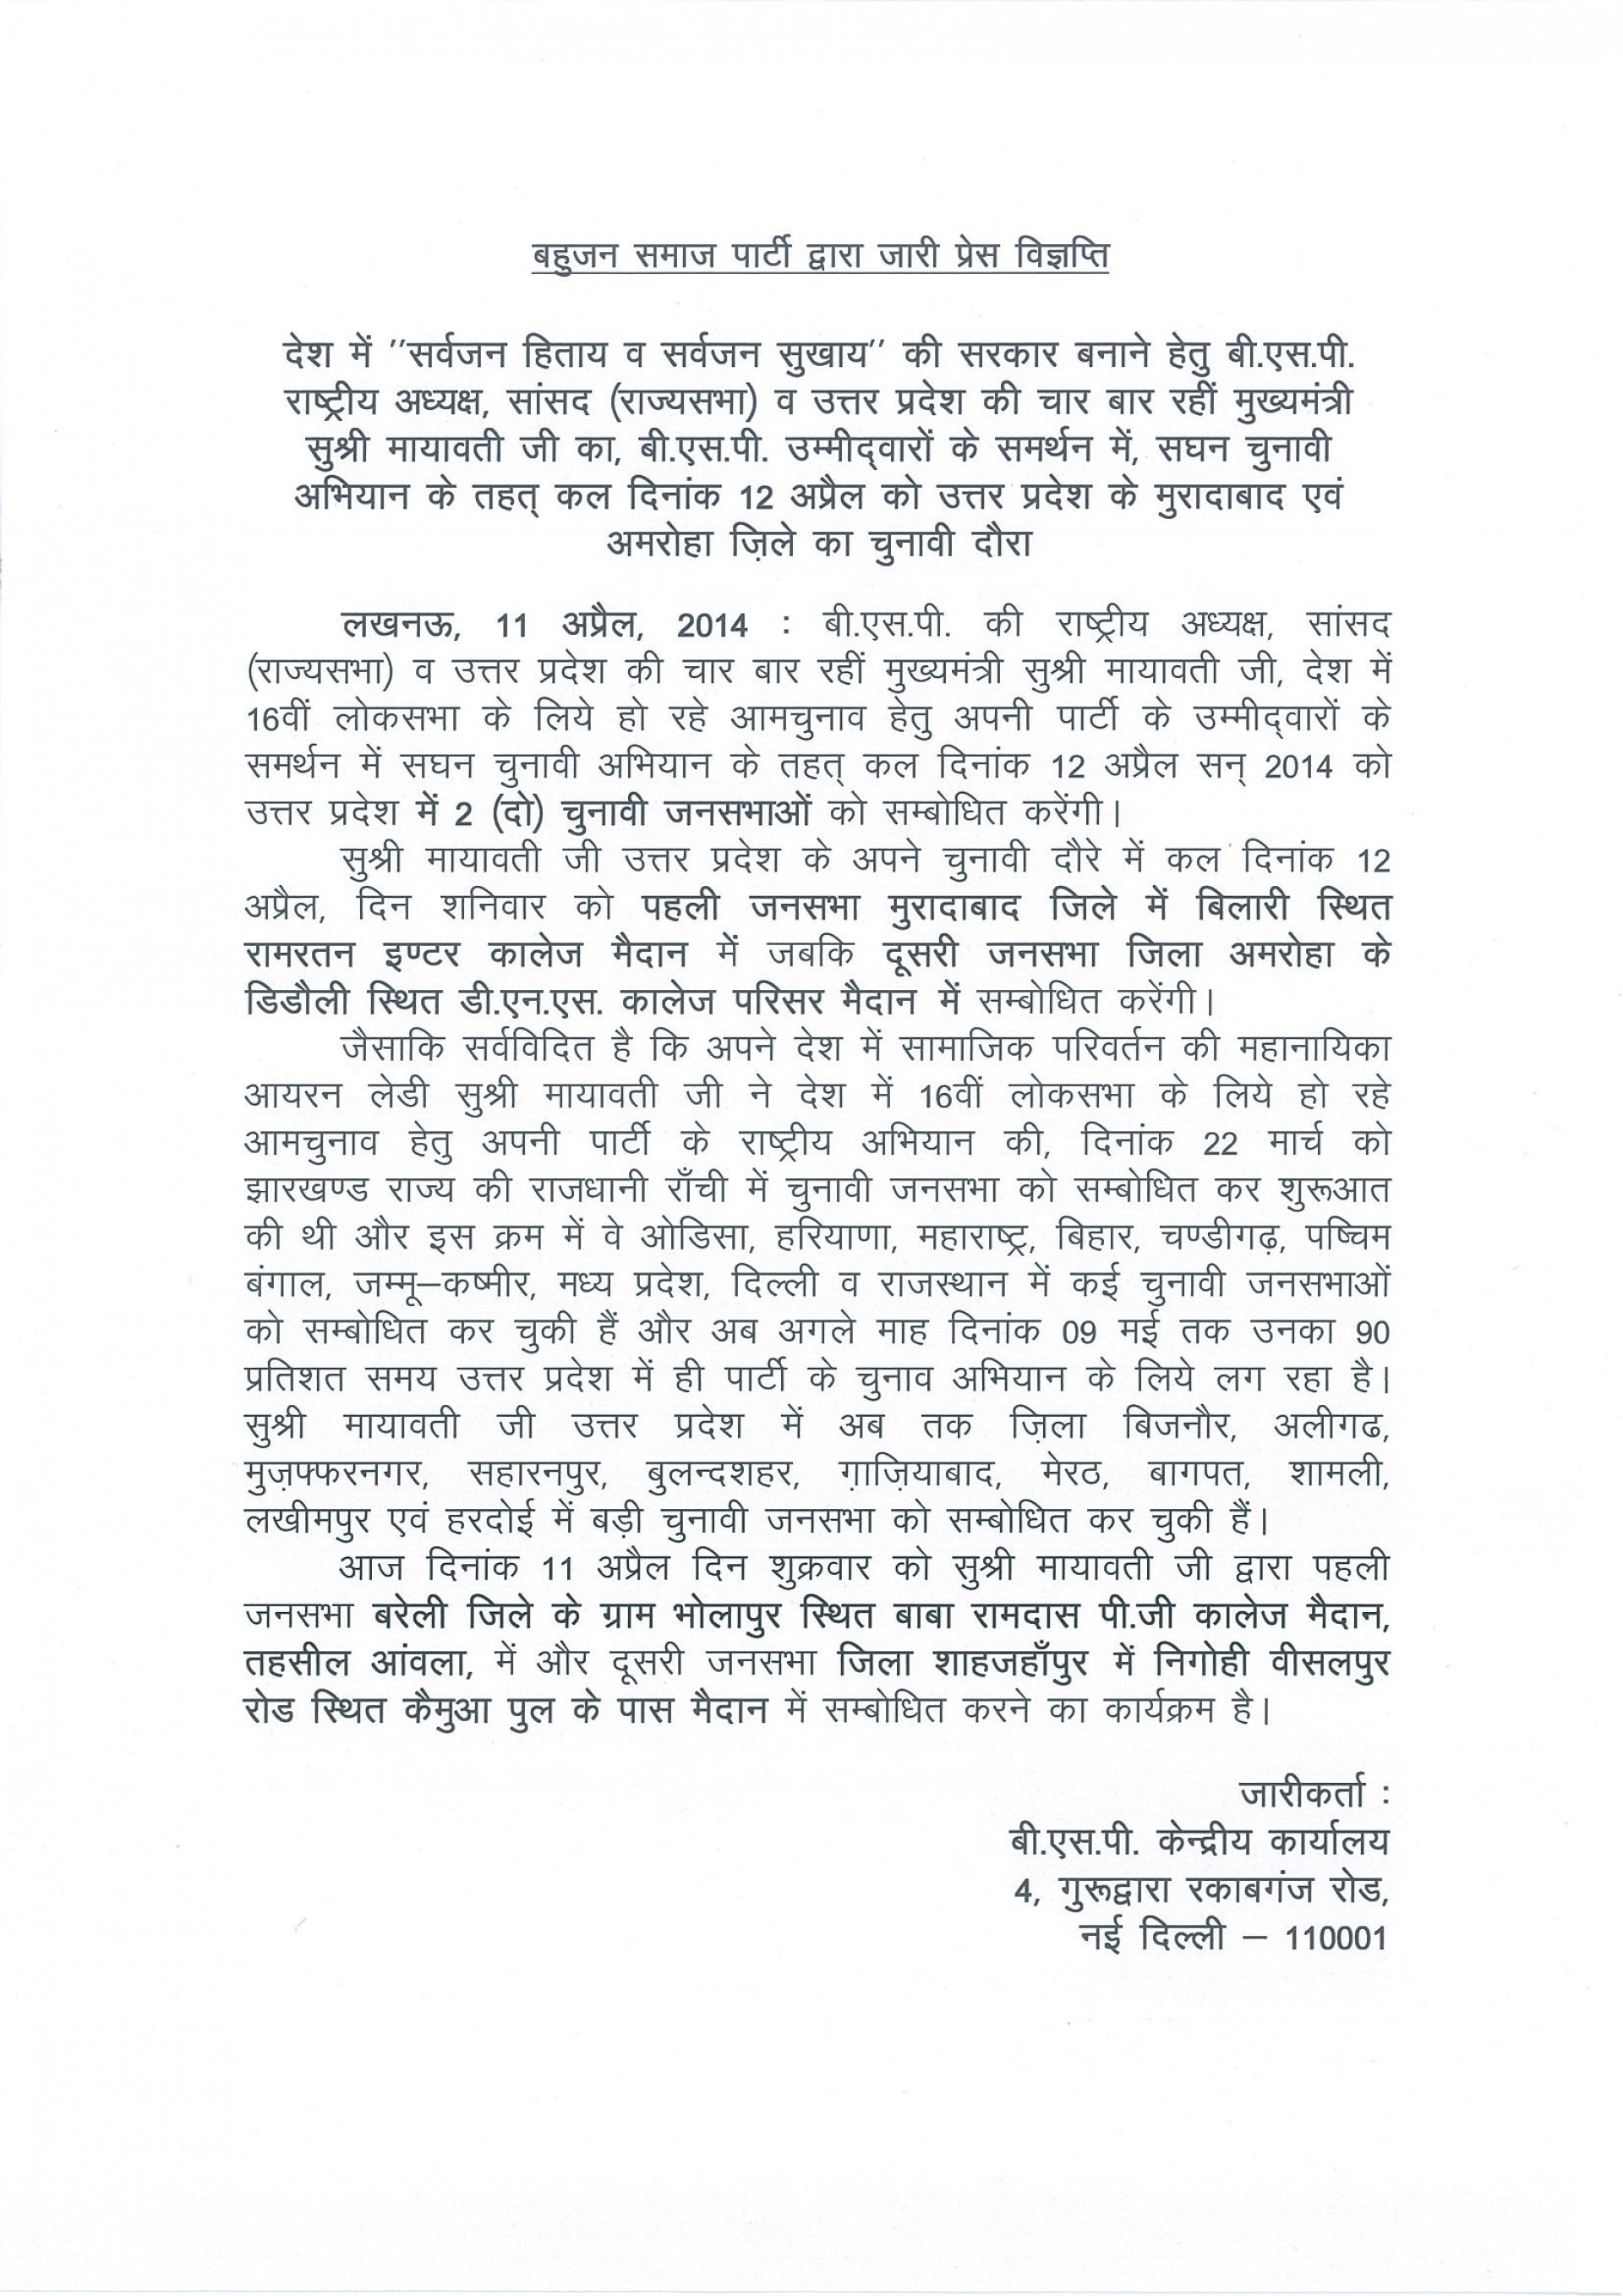 013 Essay On Earthquake Example Bsp Press Note Up New Impressive Occurred In India During 2011-12 English Hindi 1920